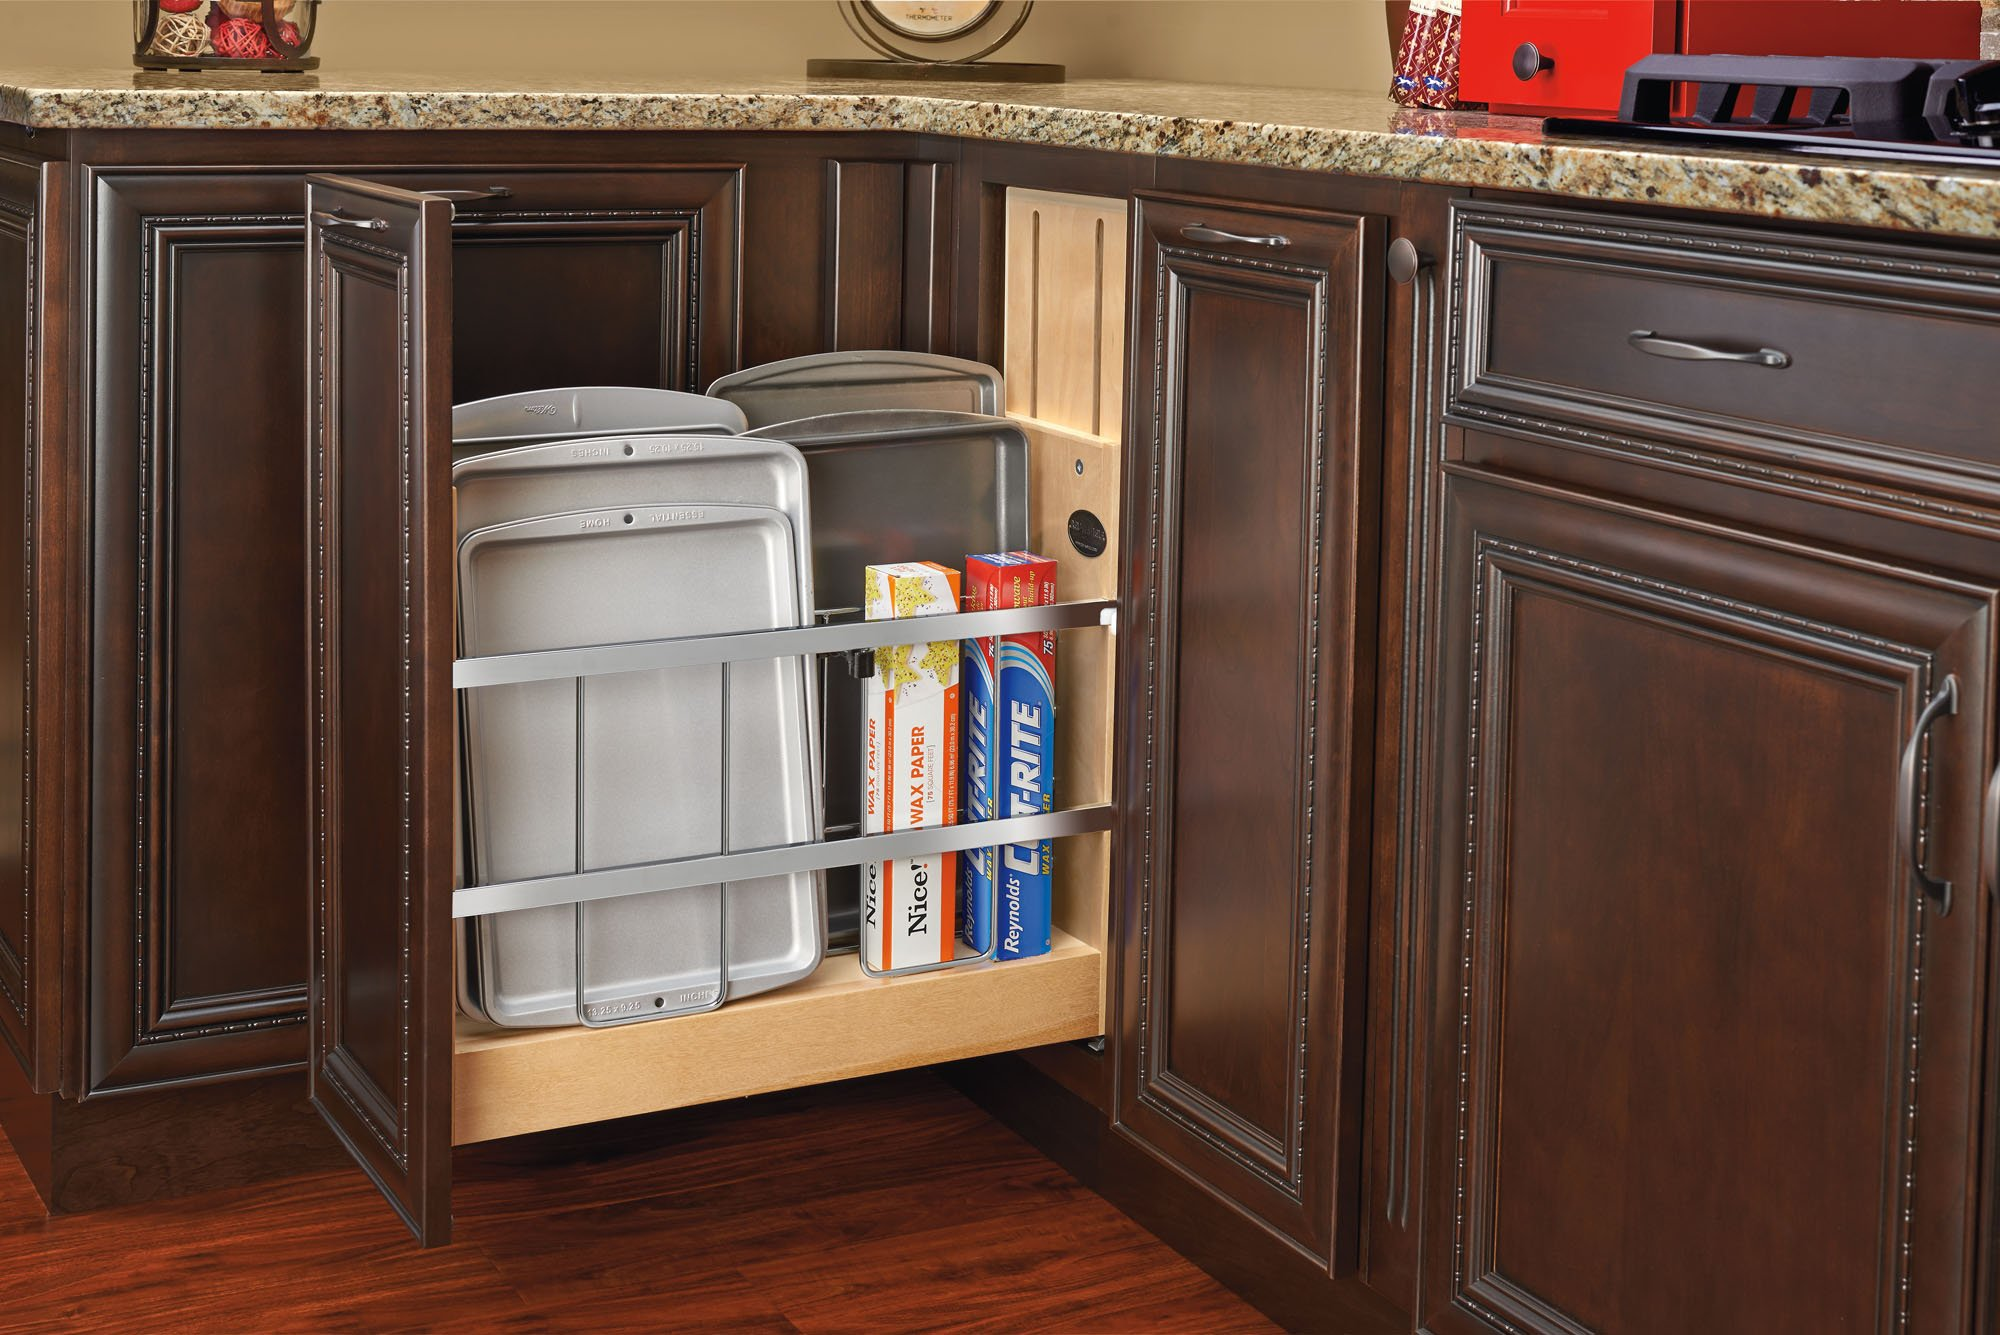 Rev-A-Shelf - 447-BCSC-5C - 5 in. Pull-Out Wood Foil Wrap/Tray Divider Cabinet Organizer with Soft-Close Slides by Rev-A-Shelf